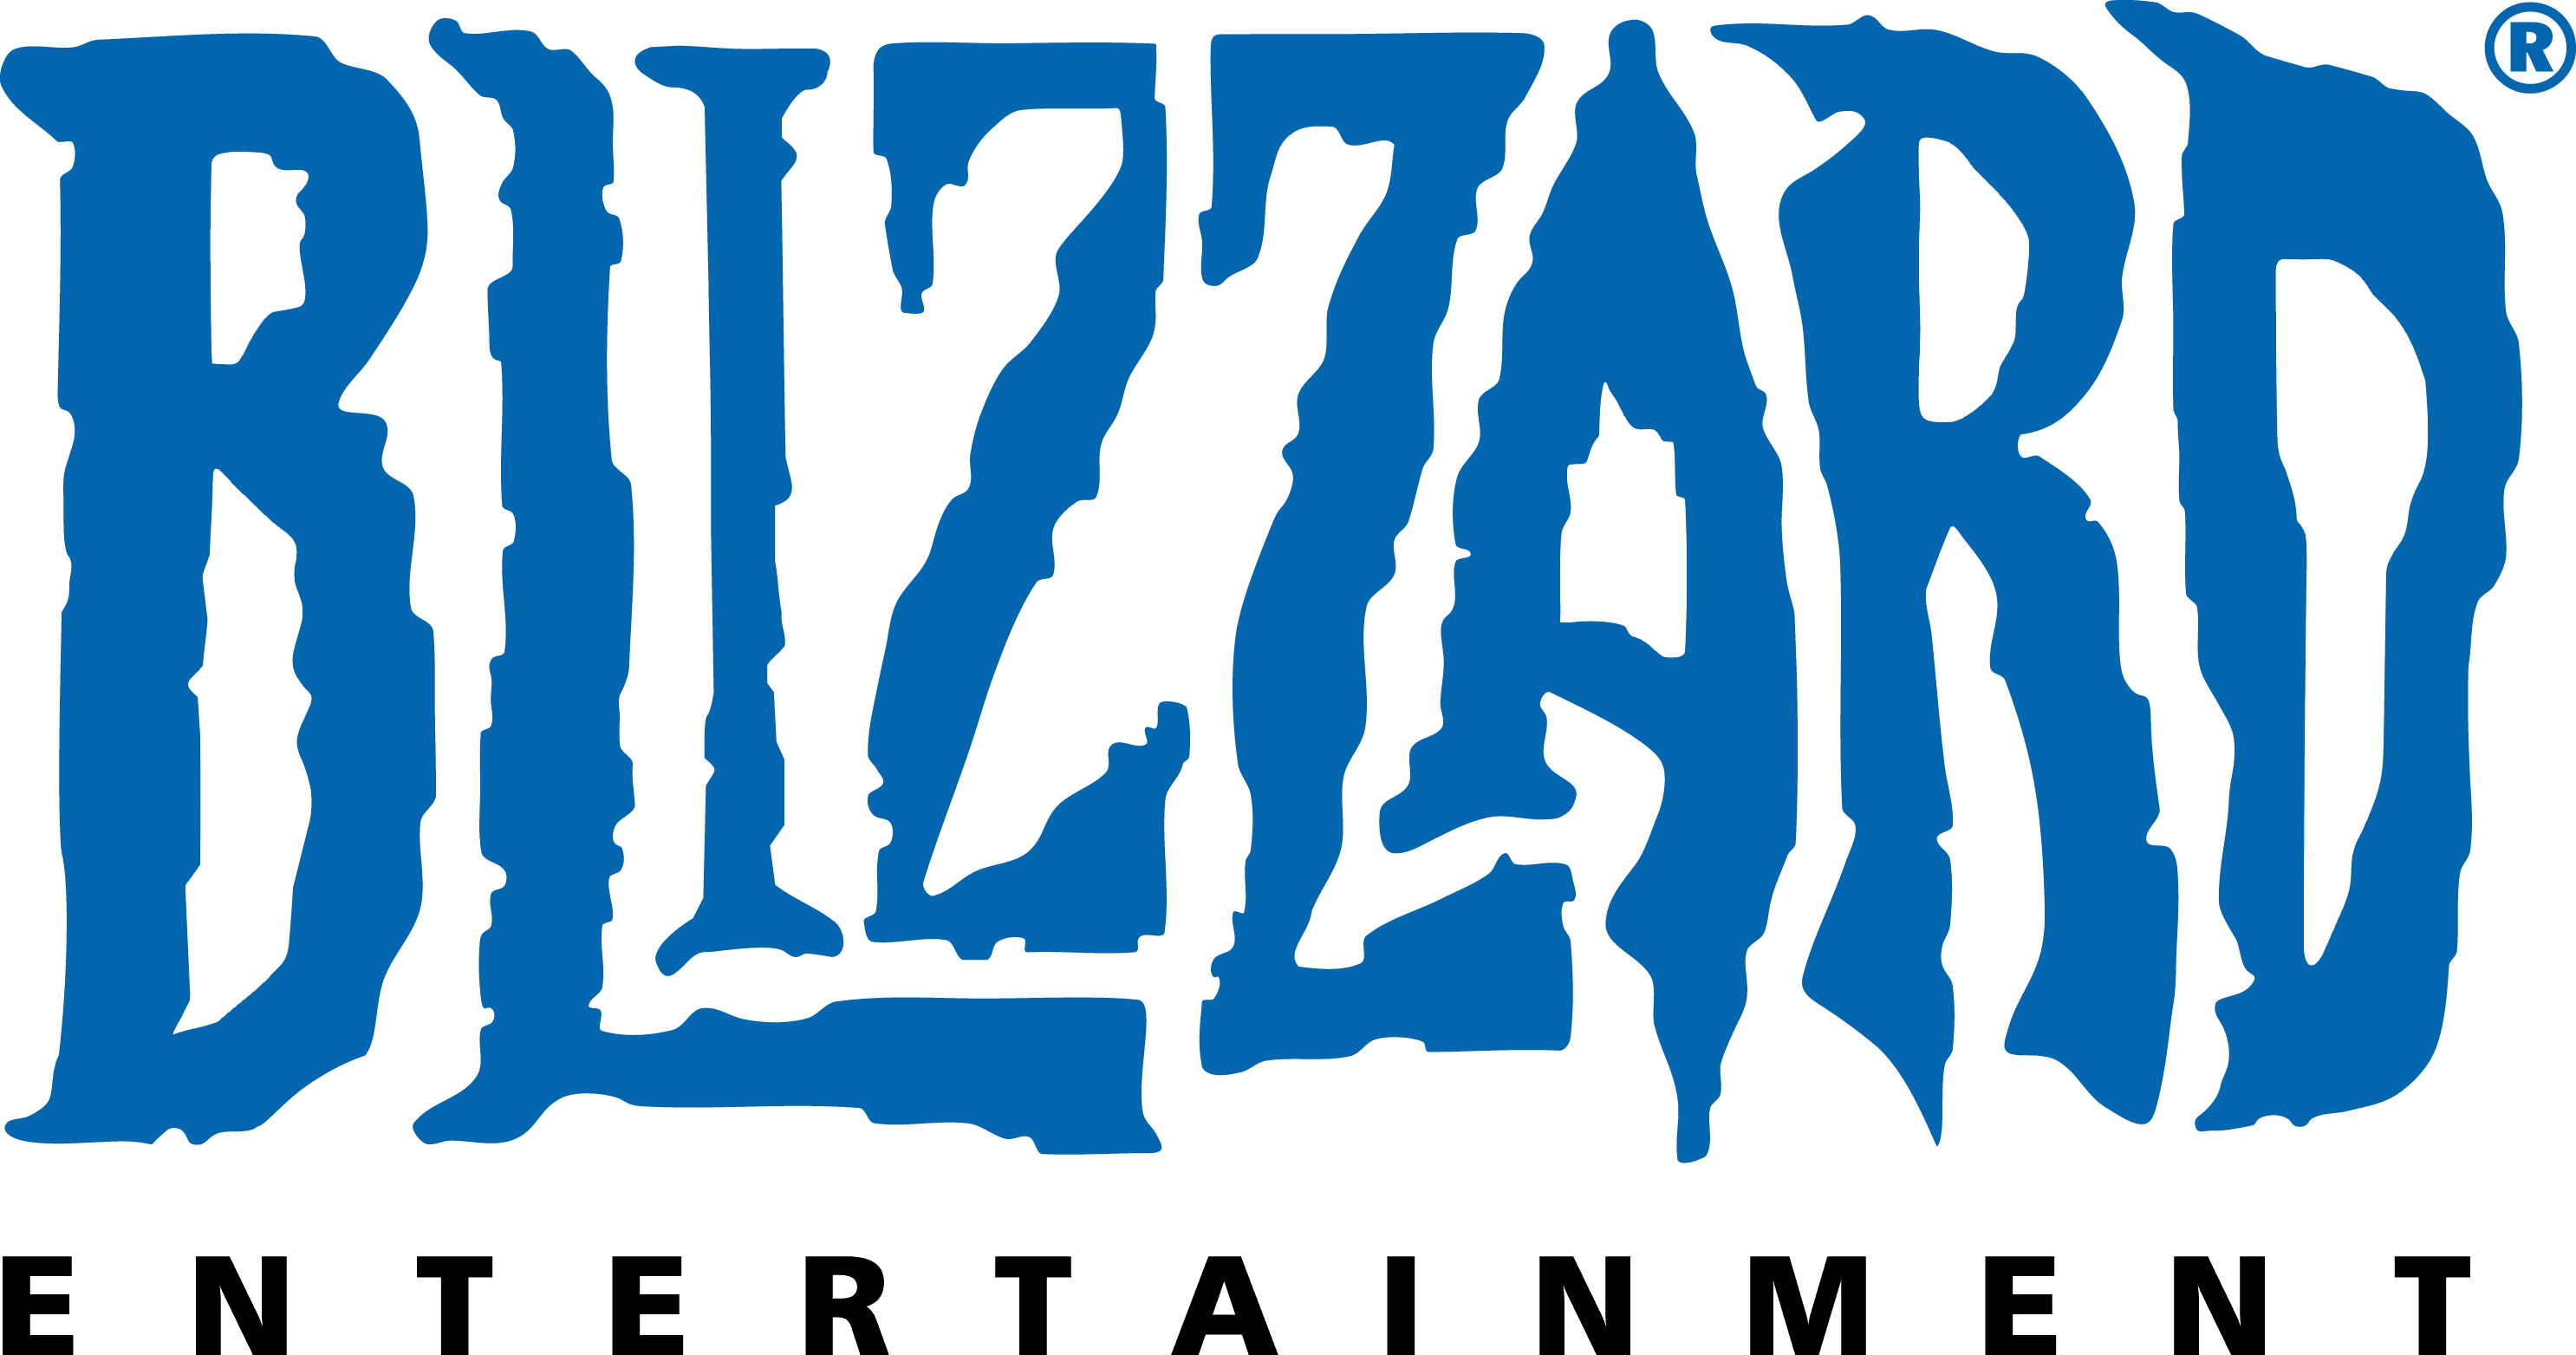 Blizzard Logo Vector EPS Free Download, Logo, Icons, Brand Emblems